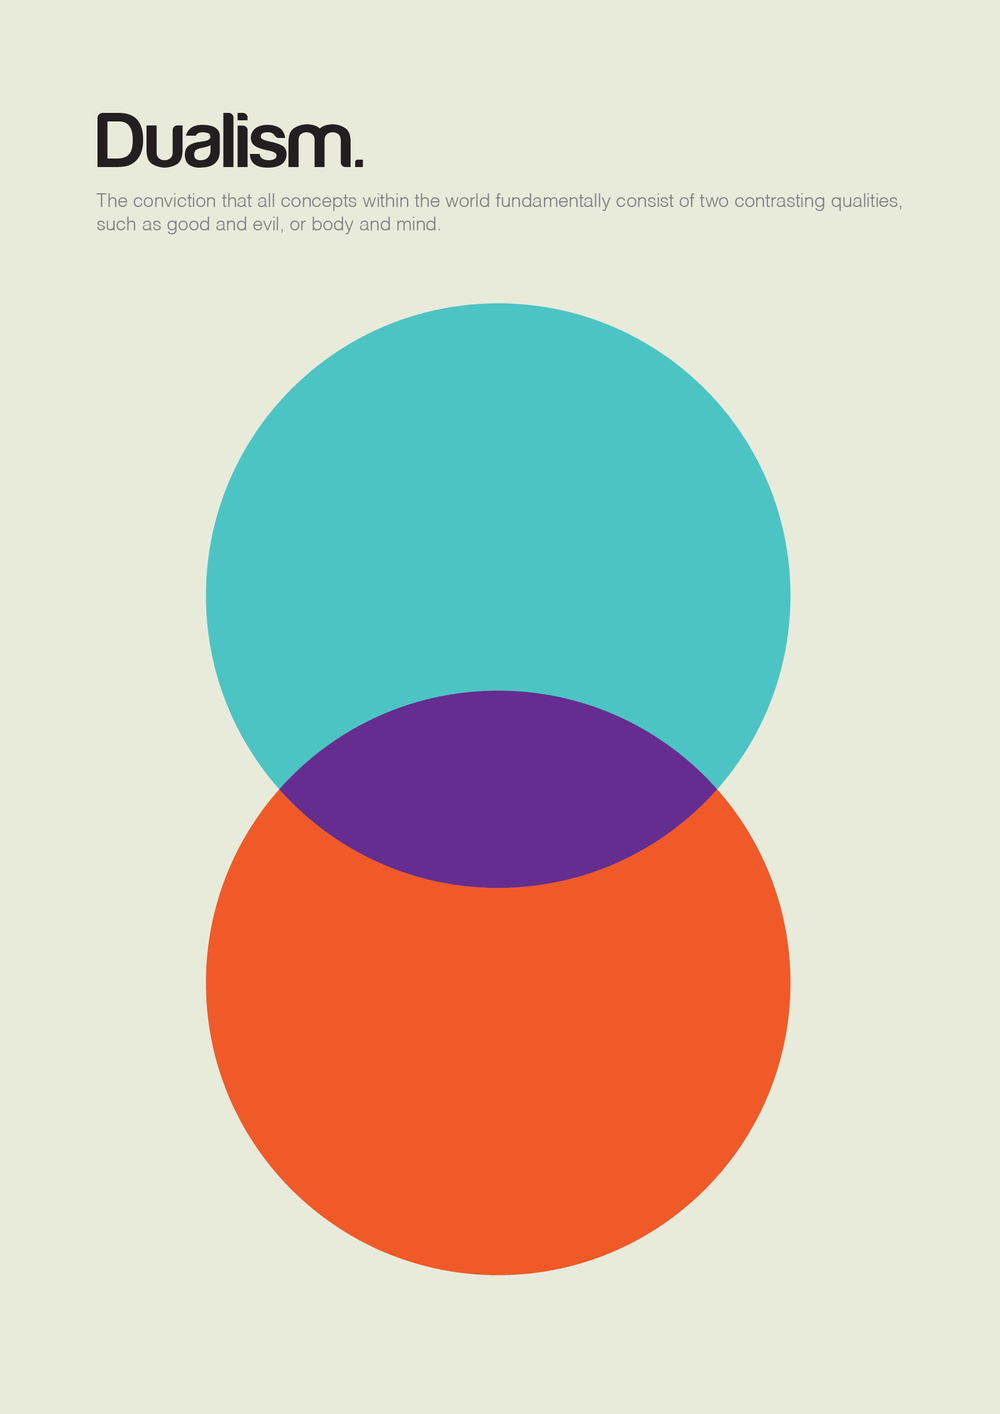 Philographics Or Big Ideas In Simple Shapes By Genis Carreras Minimalist Poster Design Basic Shapes Minimalist Poster